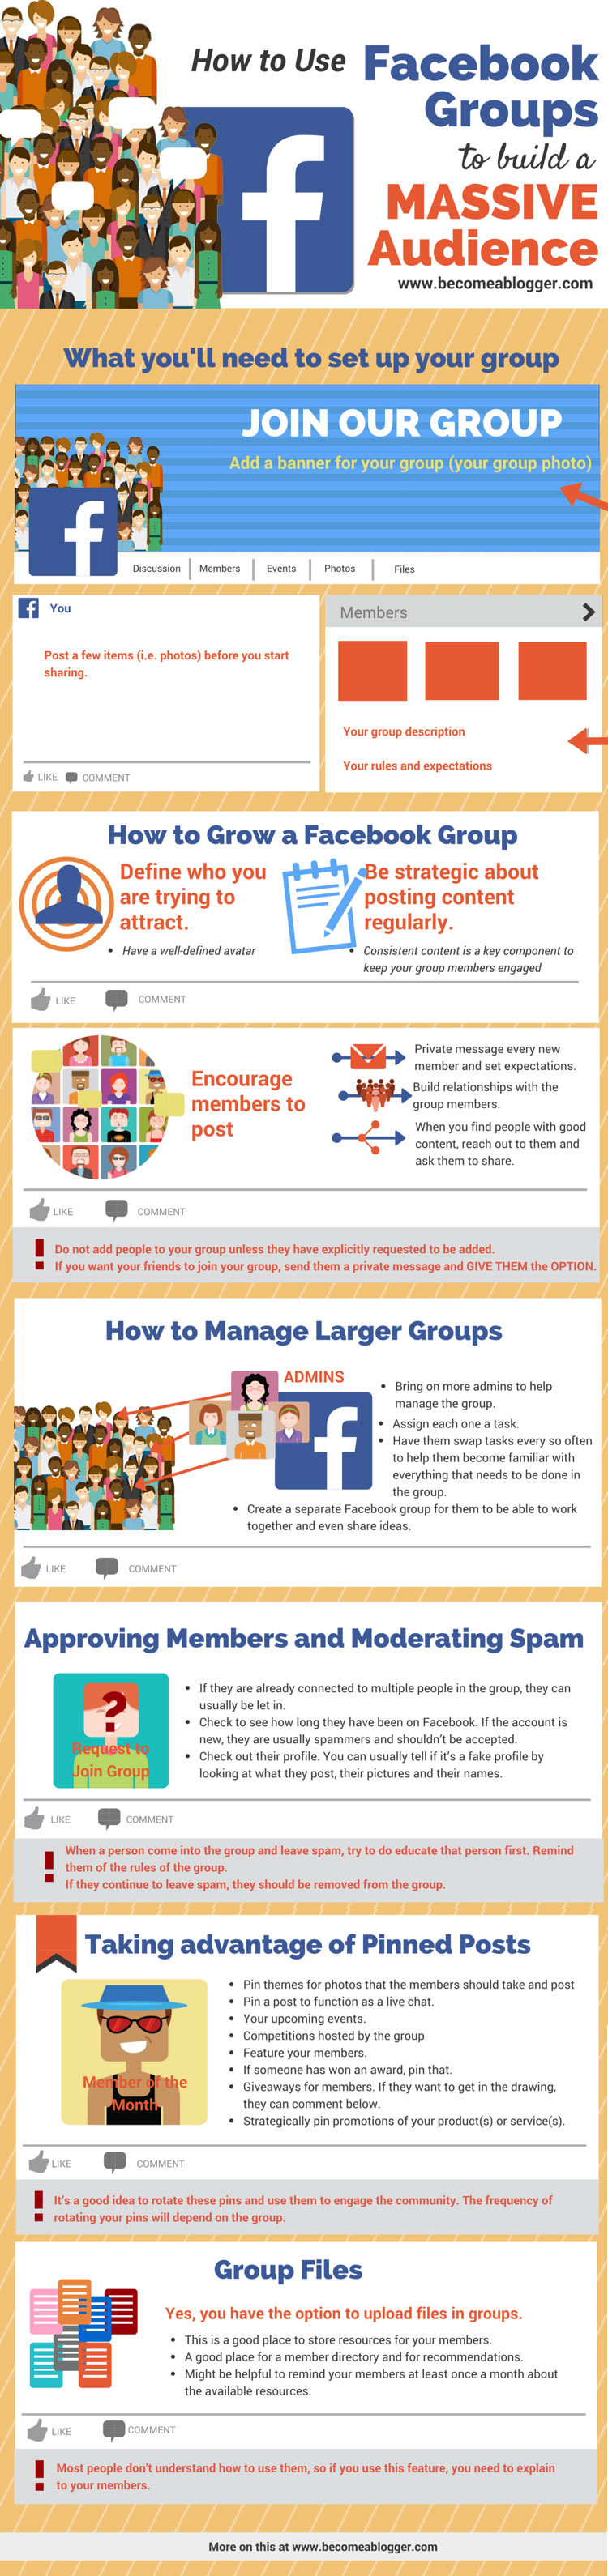 How to Use Facebook Groups to Build a Massive Audience - infographic